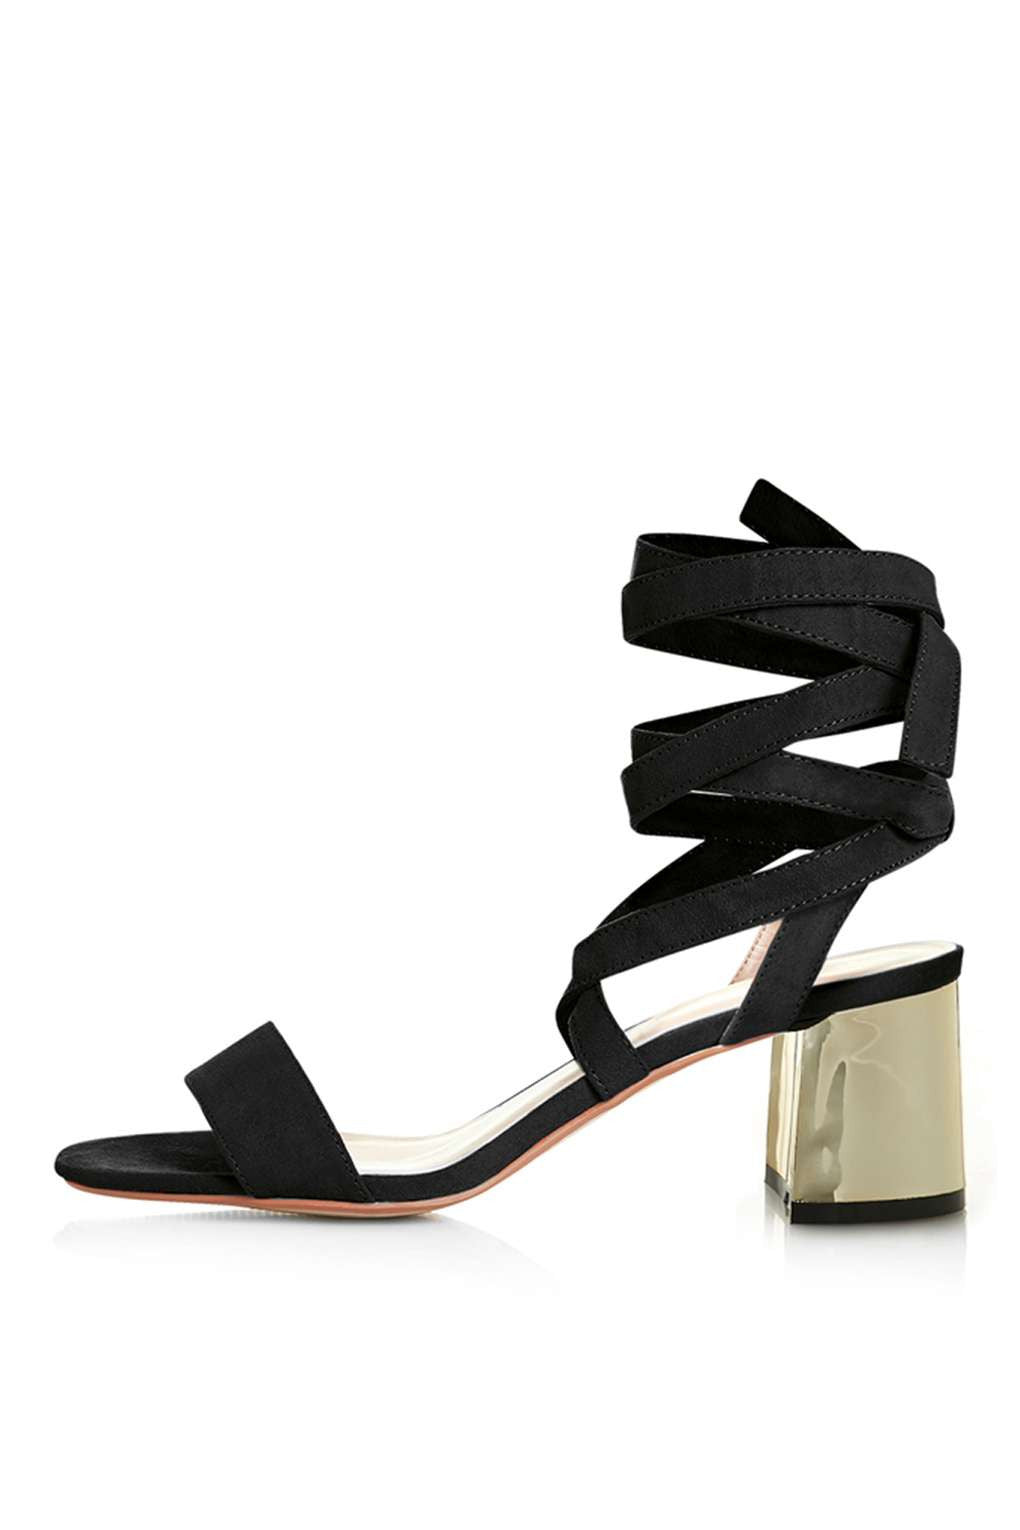 TopShop DELILAH Tie-up Sandals